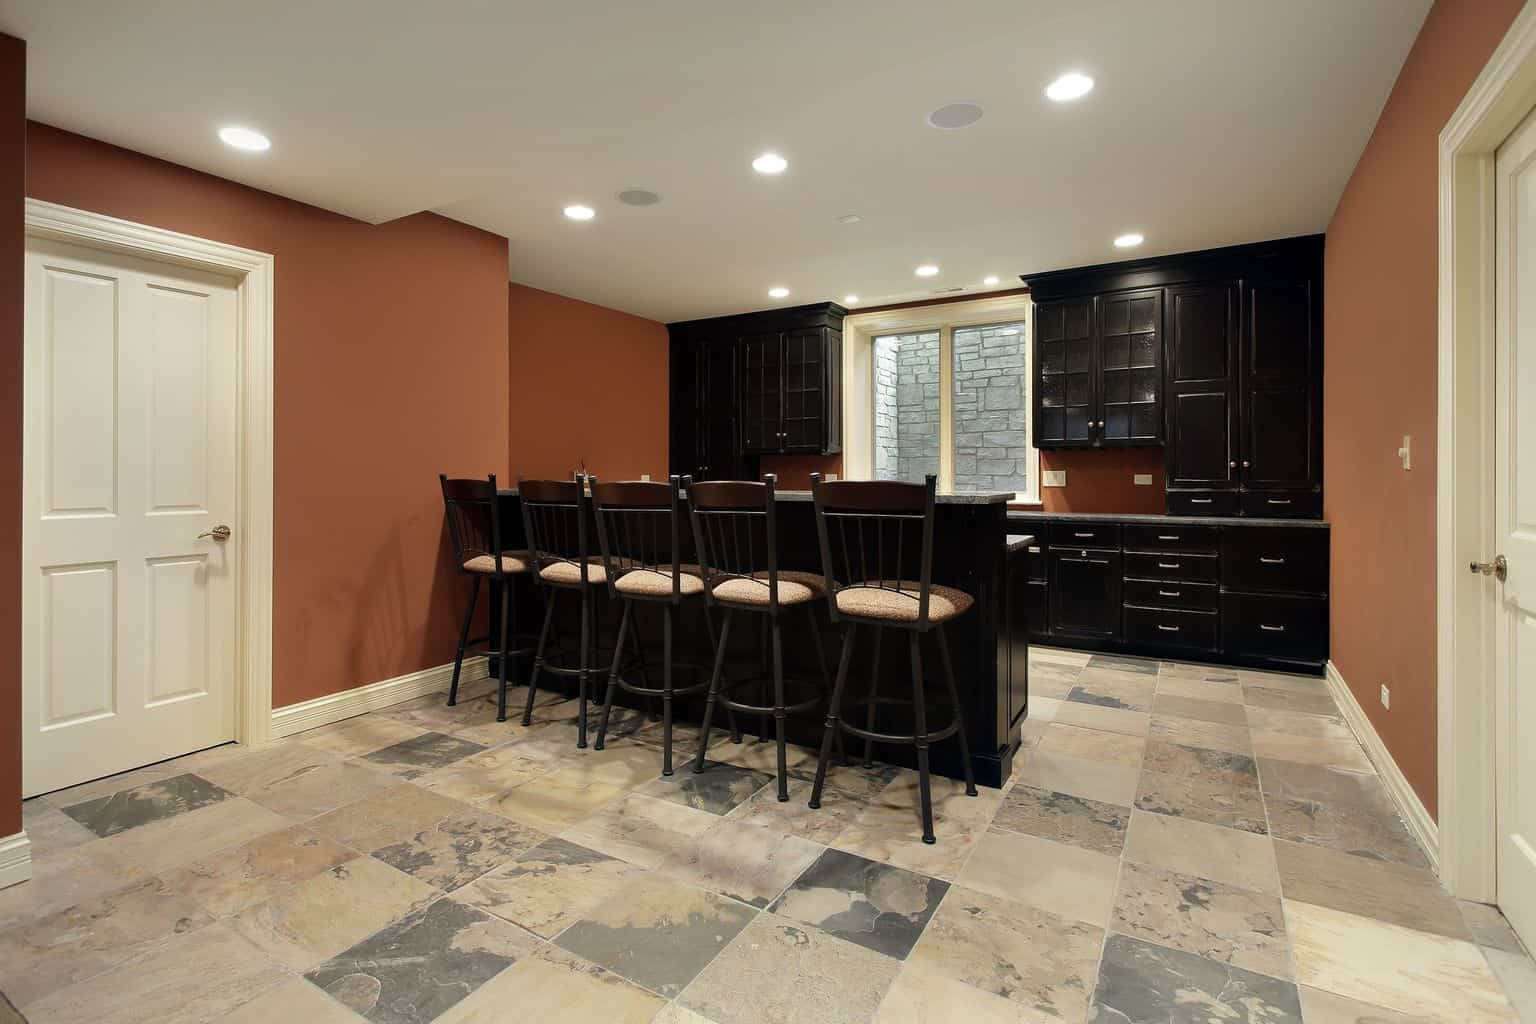 if you need cheap durable basement flooring you have several different options you could consider painting basement floors to save money